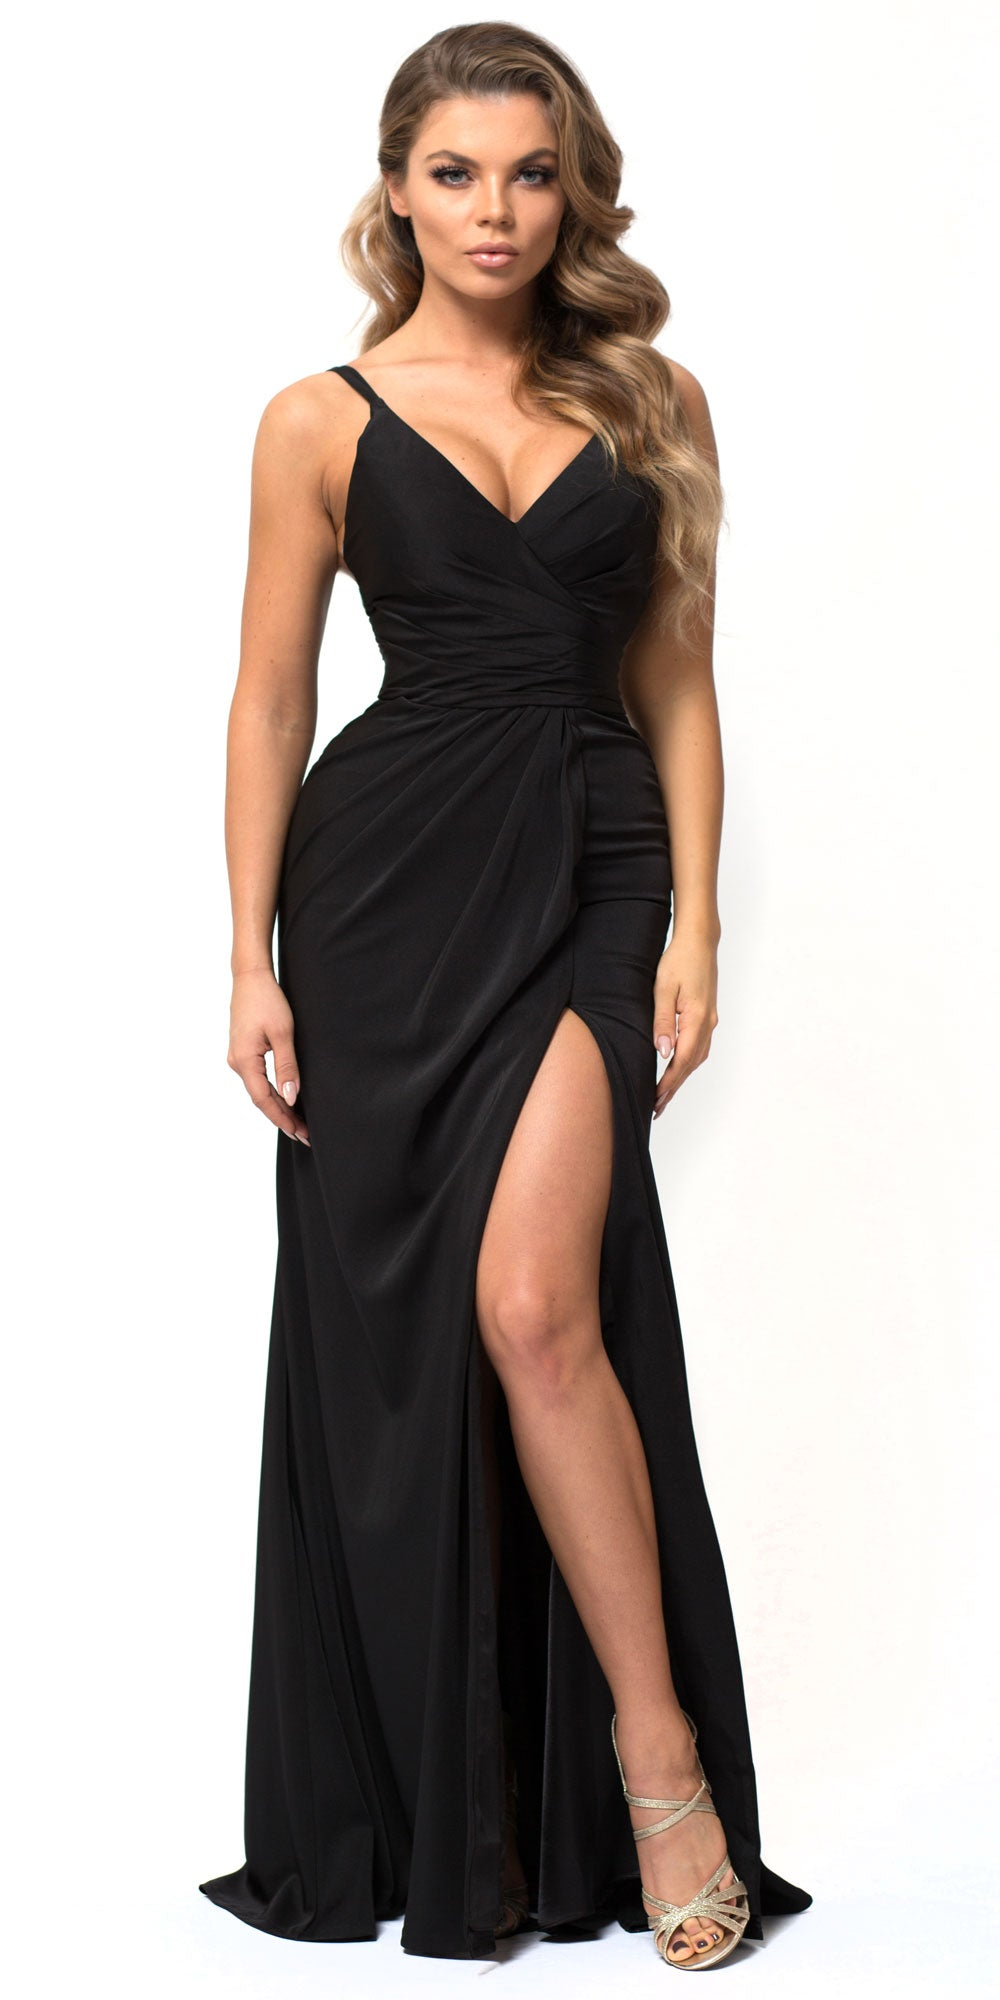 Image of Double Spaghetti Straps Overlay Bodice Long Bridesmaid Dress in Black